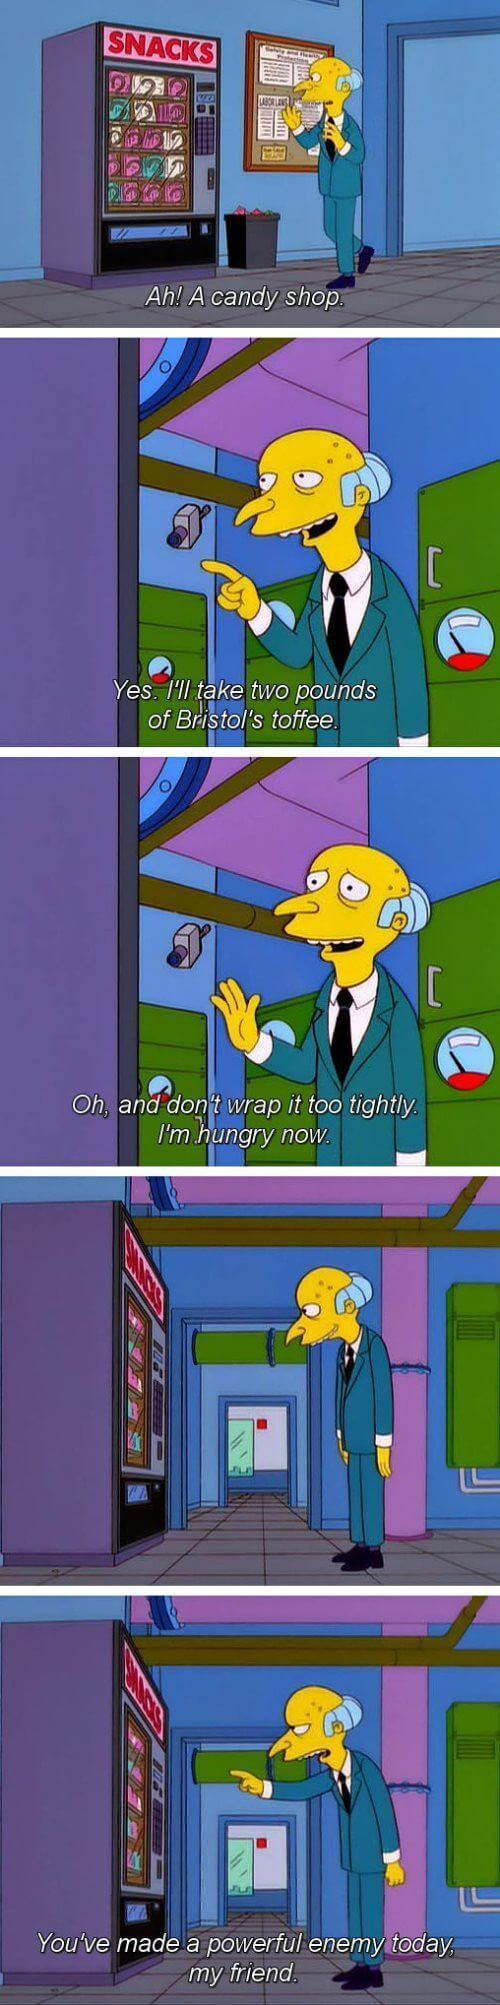 mr burns sayings 8 (1)